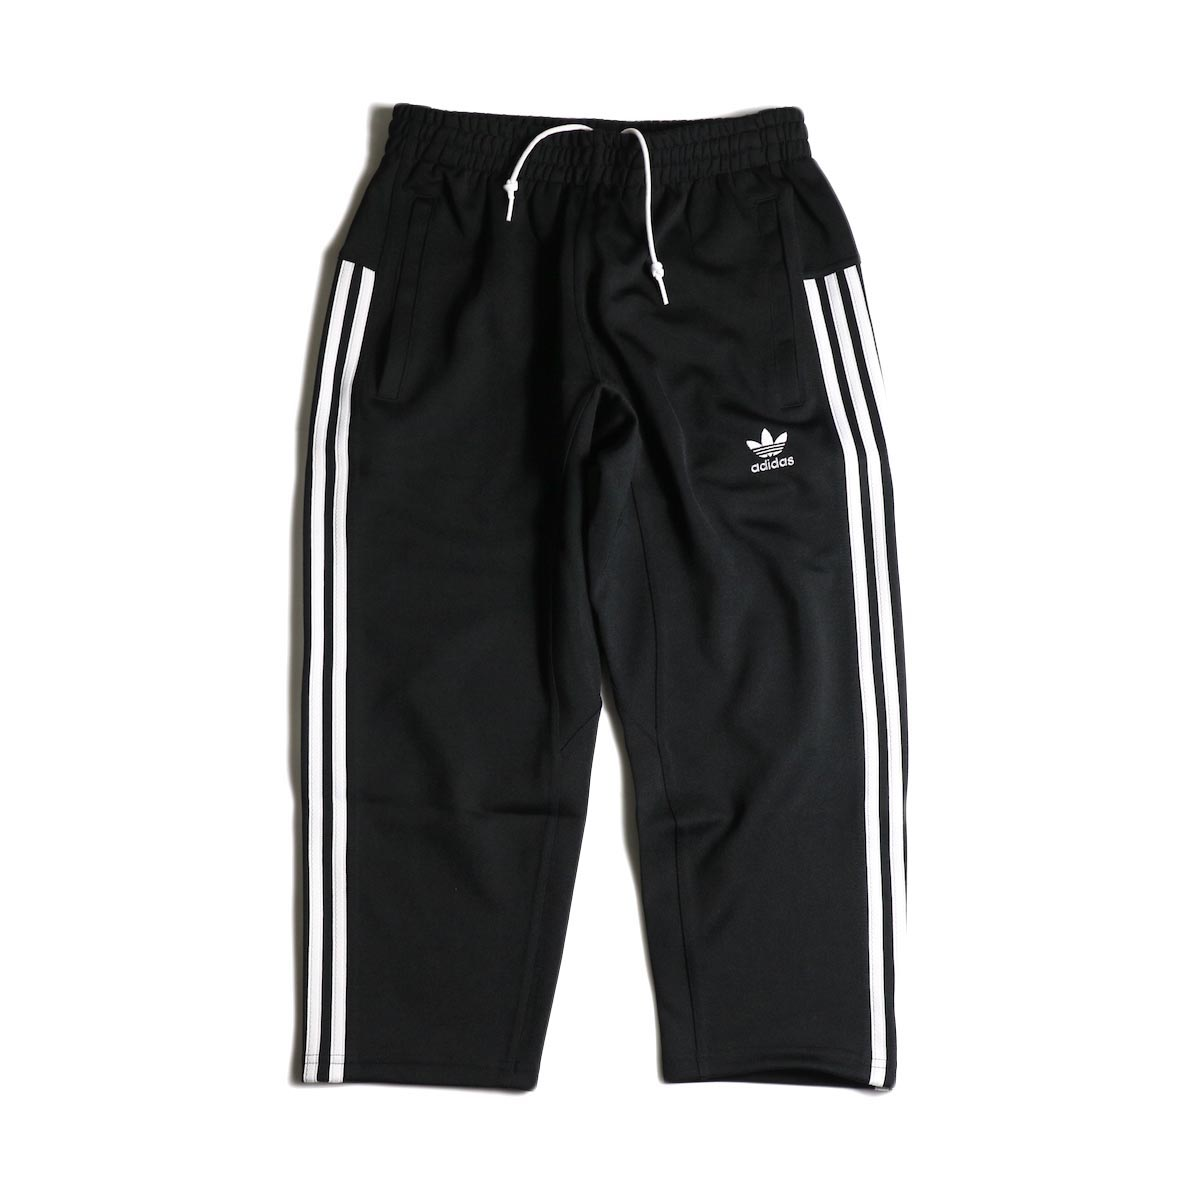 adidas / AC 7/8 PANTS (Black) 正面